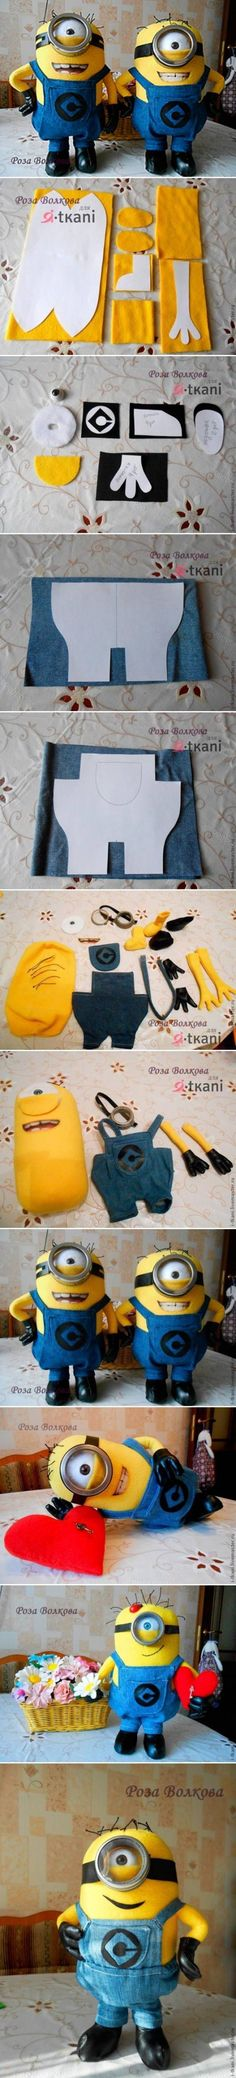 How to make Minion toy Doll step by step DIY tutorial instructions , How to, how to do, diy instructions, crafts, do it yourself, diy website, art project ideas